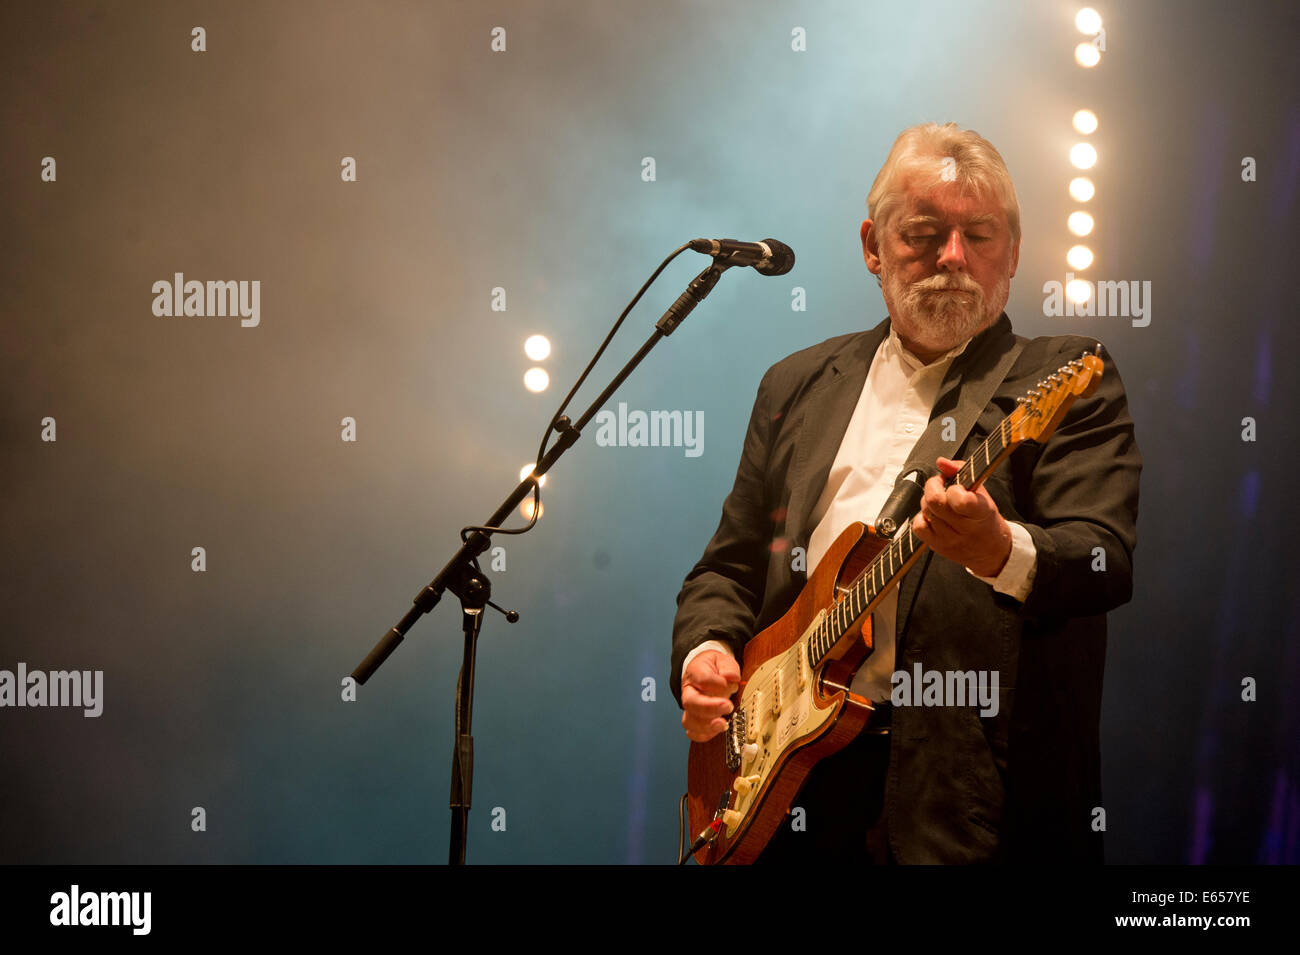 Simon Nicol at Cropredy Festival - Stock Image